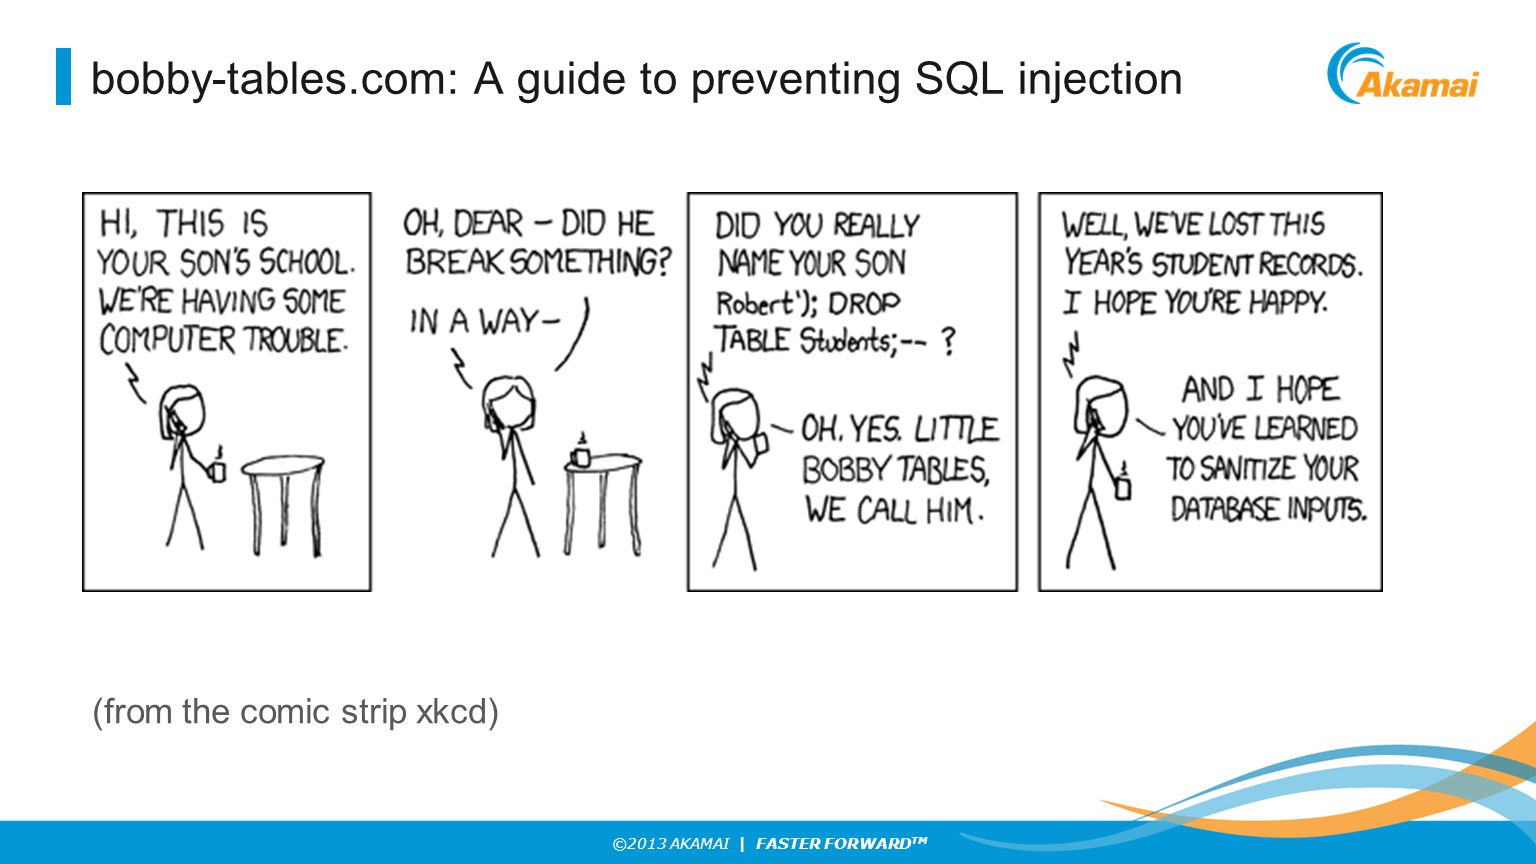 ©2013 AKAMAI | FASTER FORWARD TM bobby-tables.com: A guide to preventing SQL injection (from the comic strip xkcd)